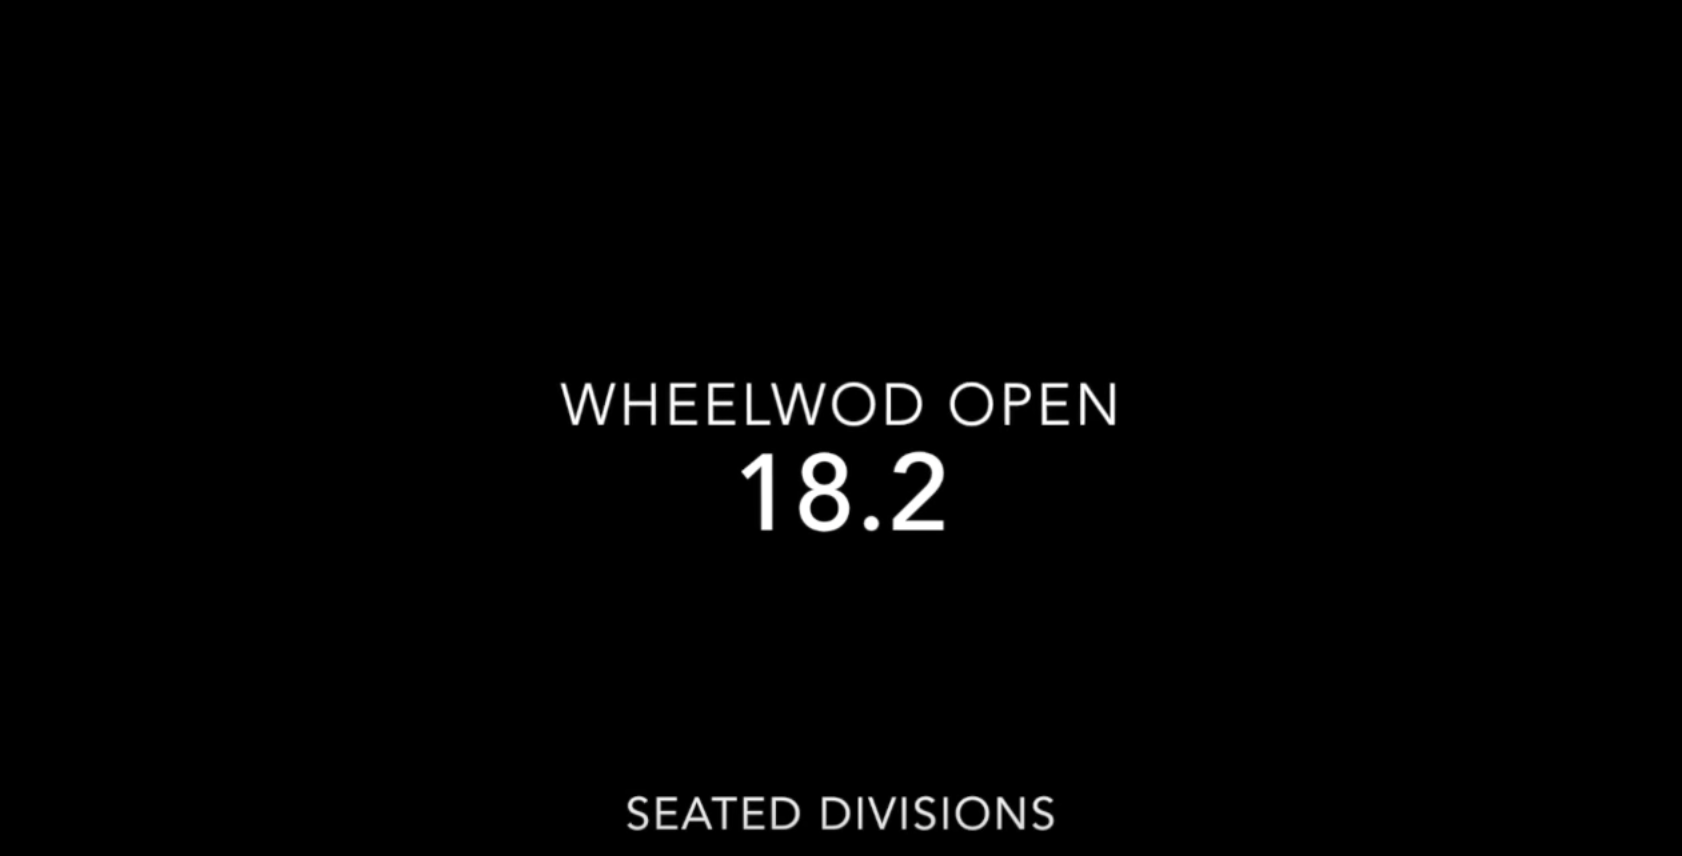 18.2 Seated WheelWOD Open